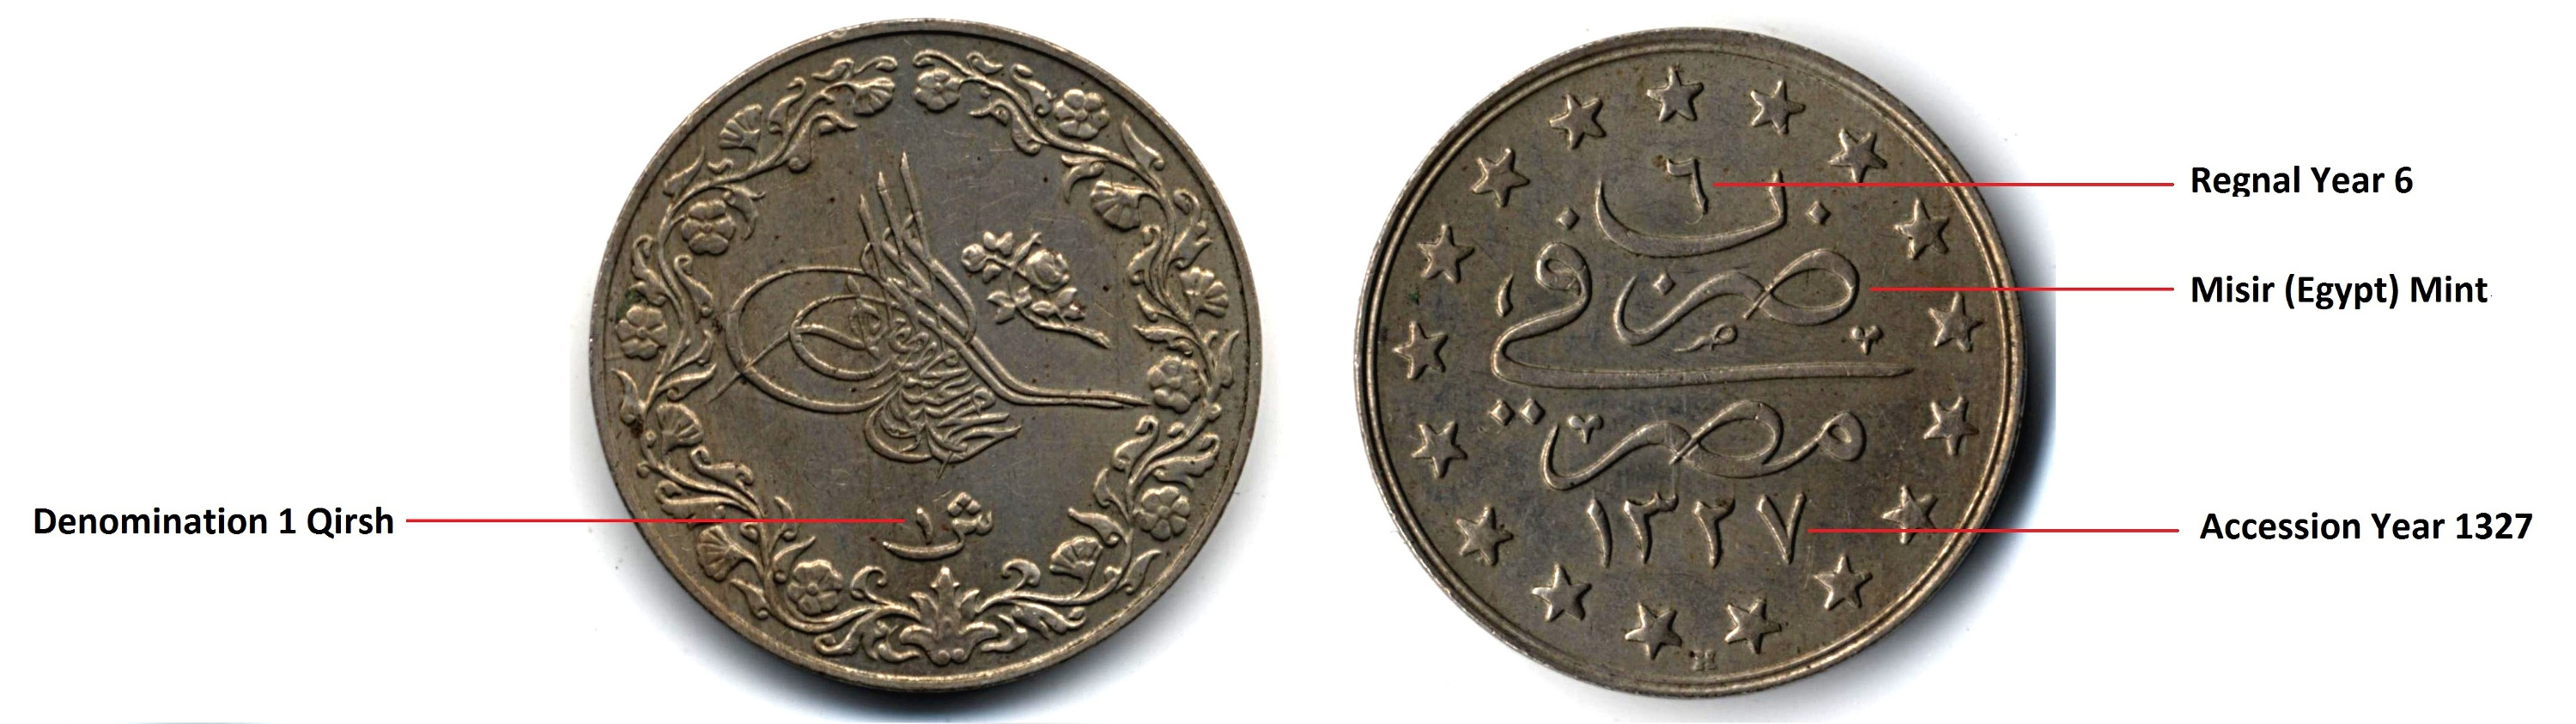 dating ottoman coins Creounity time machine  coins of the ottoman empire and some other muslim countries used double dating where on one side the ruler's accession year .